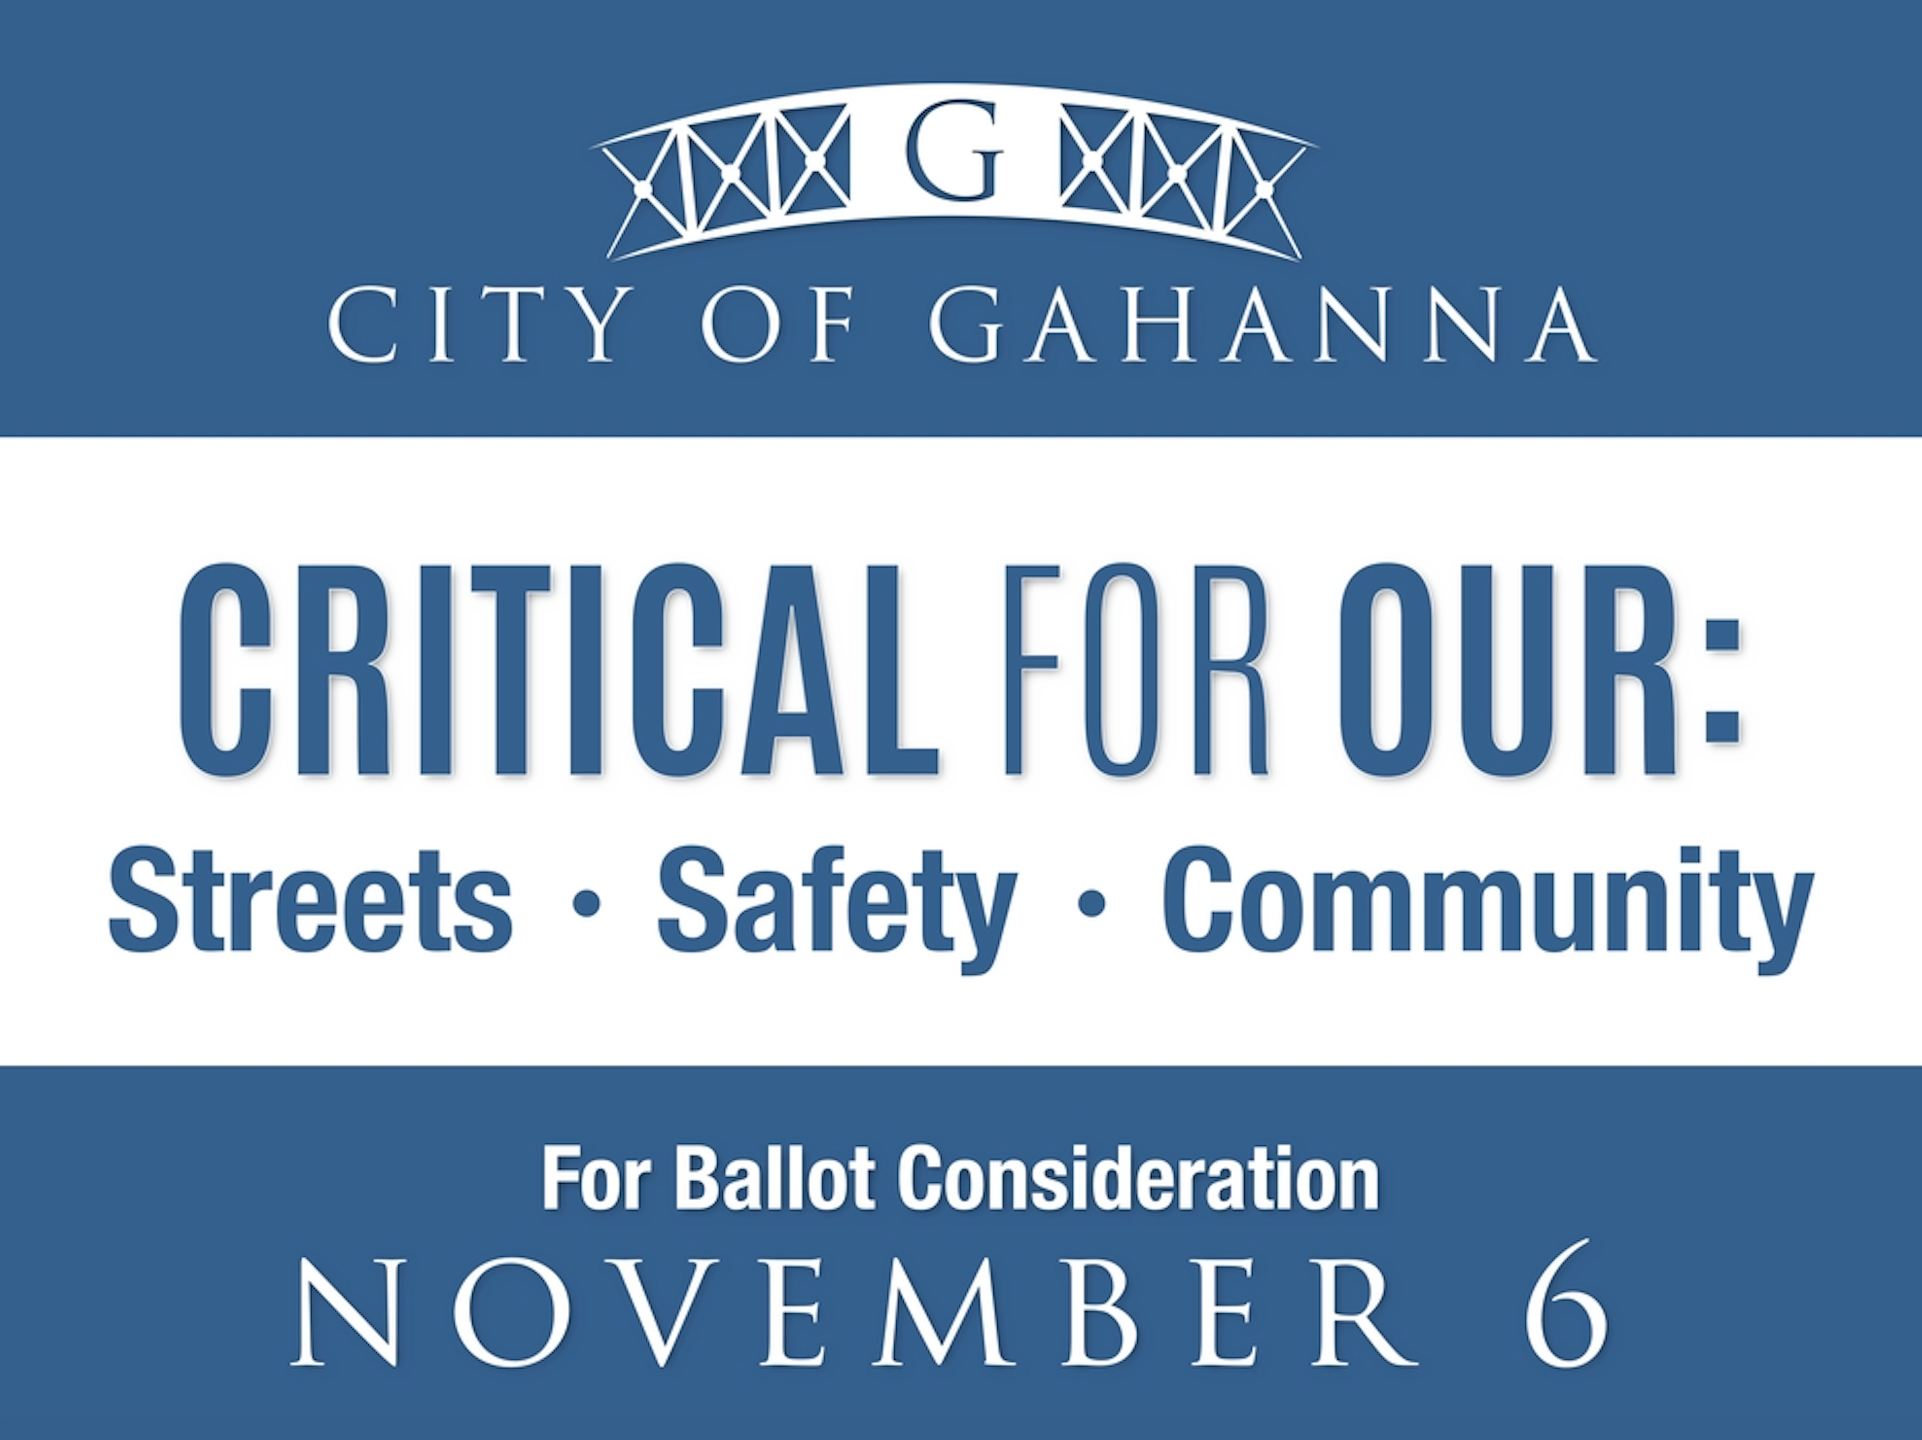 City of Gahanna to Address Streets and Safety with Nov. 6 Ballot